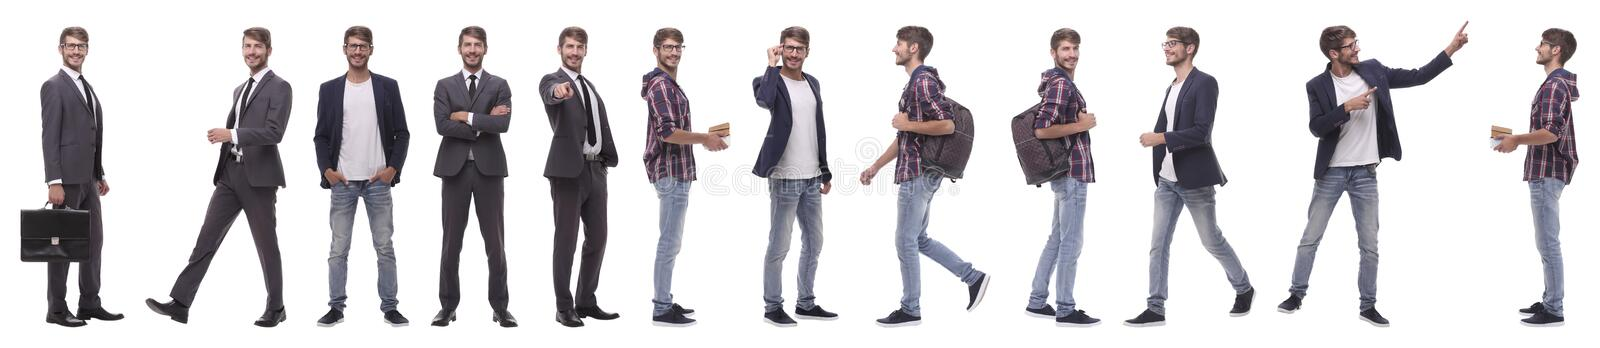 Panoramic collage of a promising young man stock image